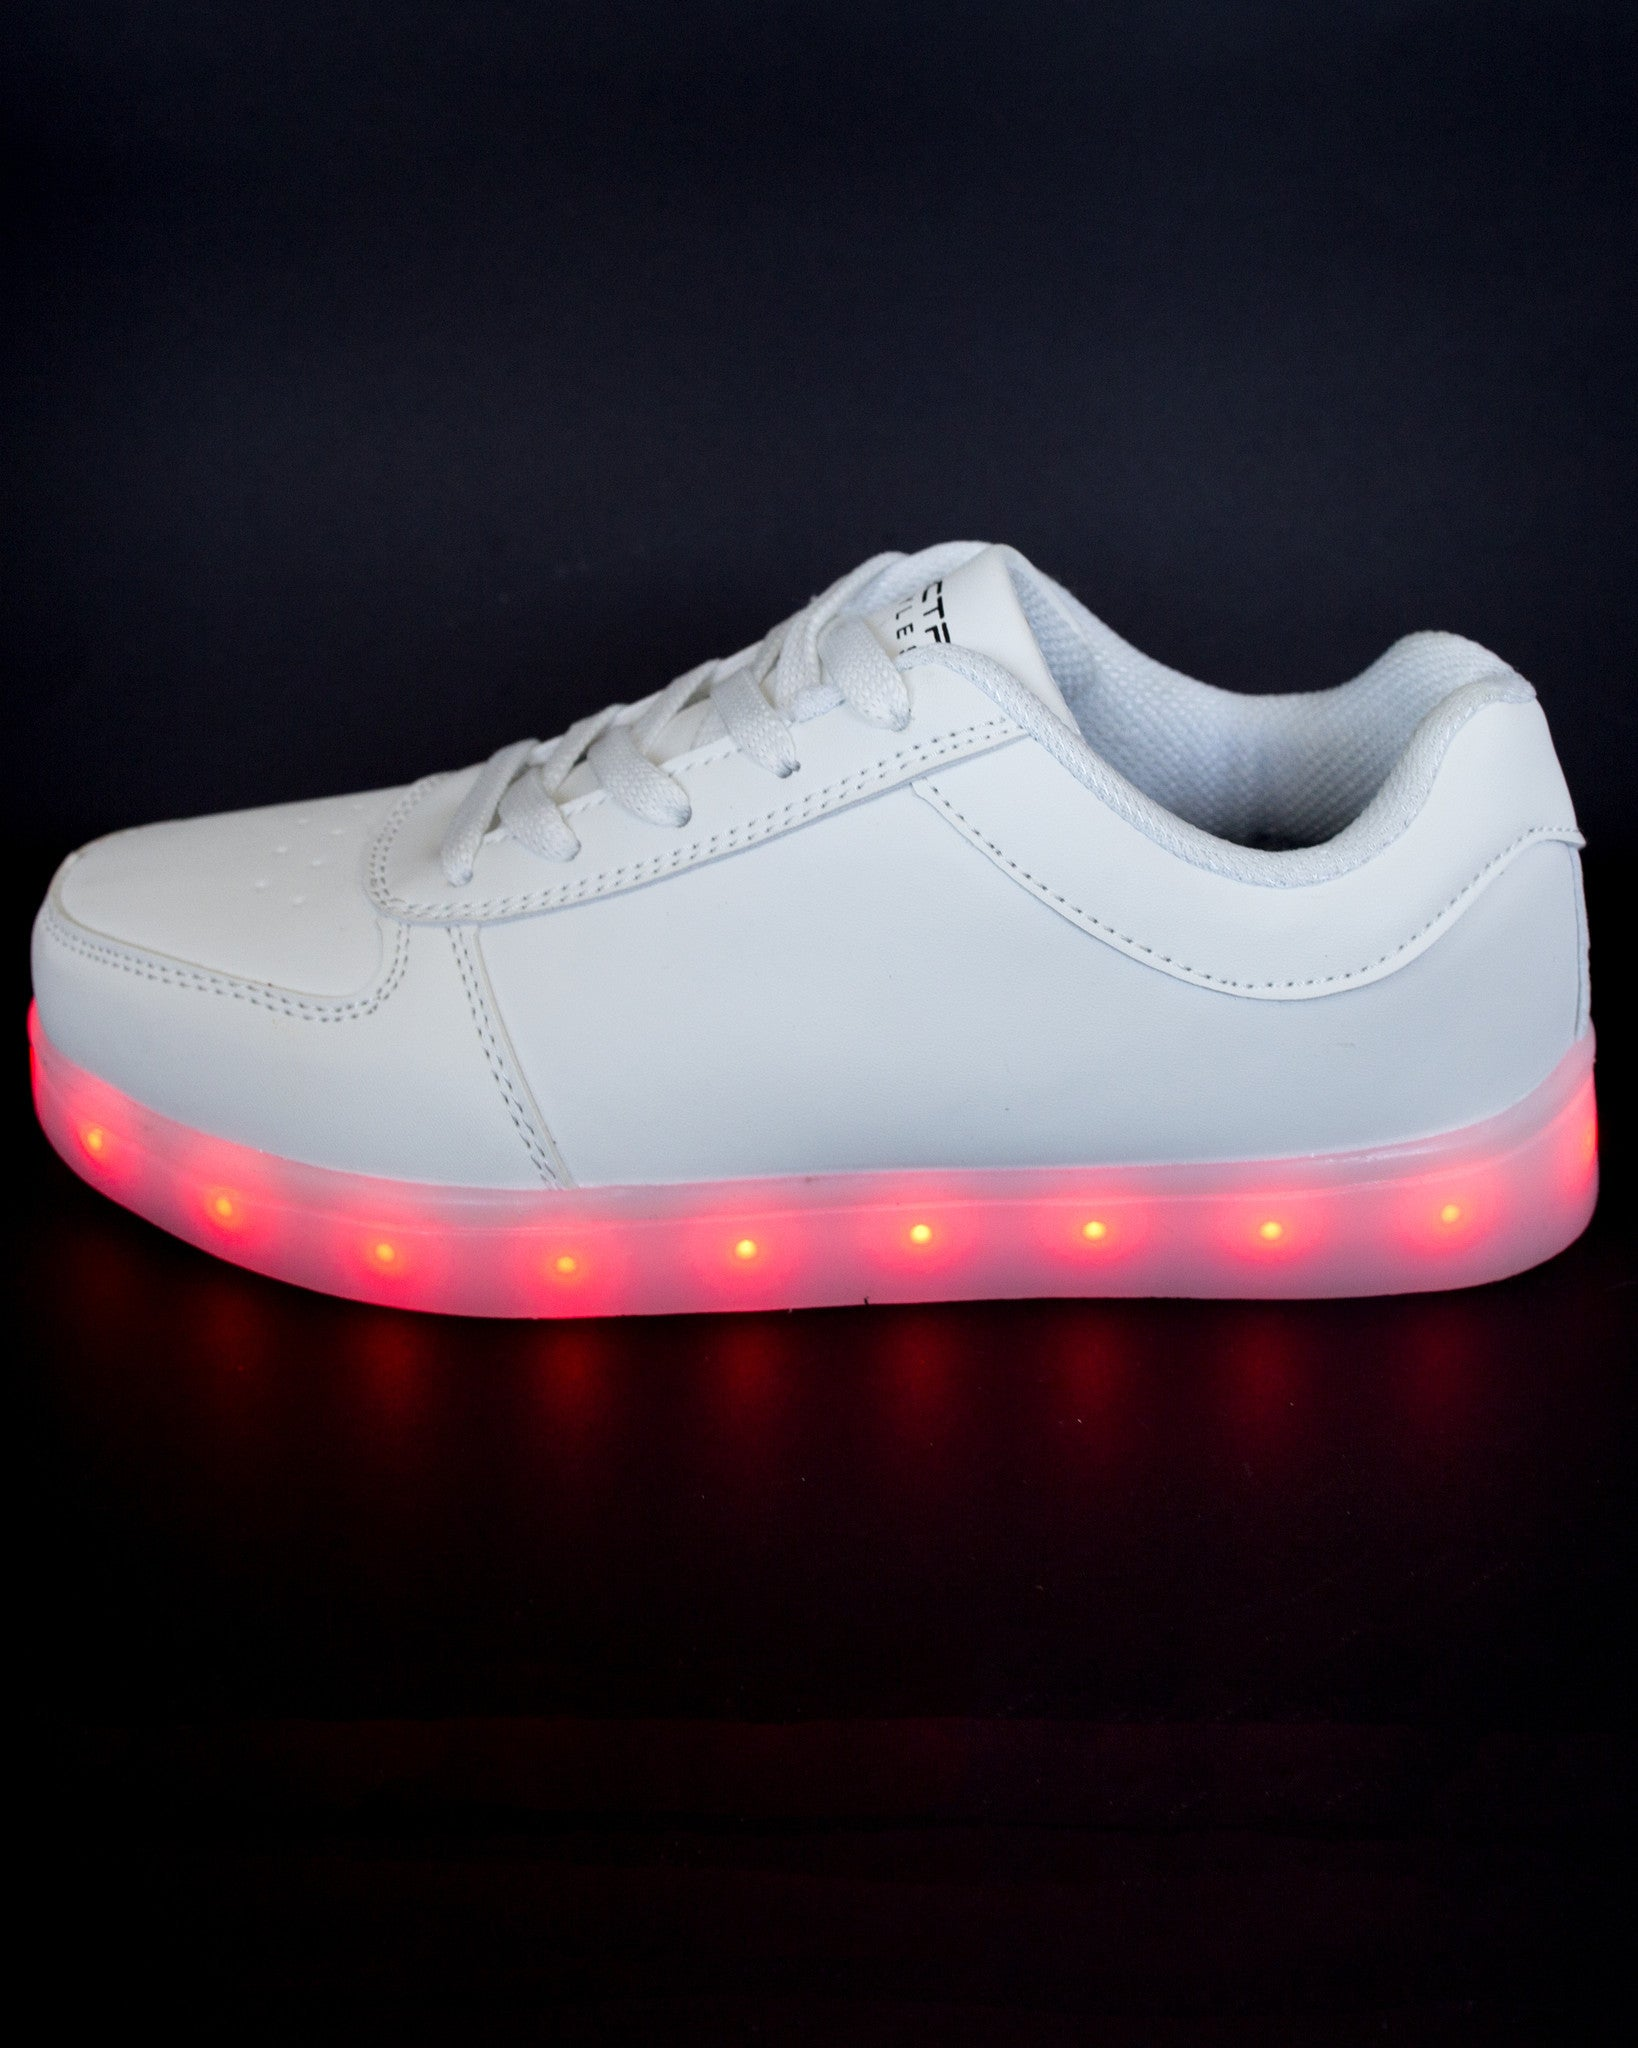 Light Up Shoes- Original - Electric Styles | World's Number 1 Light Up Shoe Store - {product_type}} -  - 3